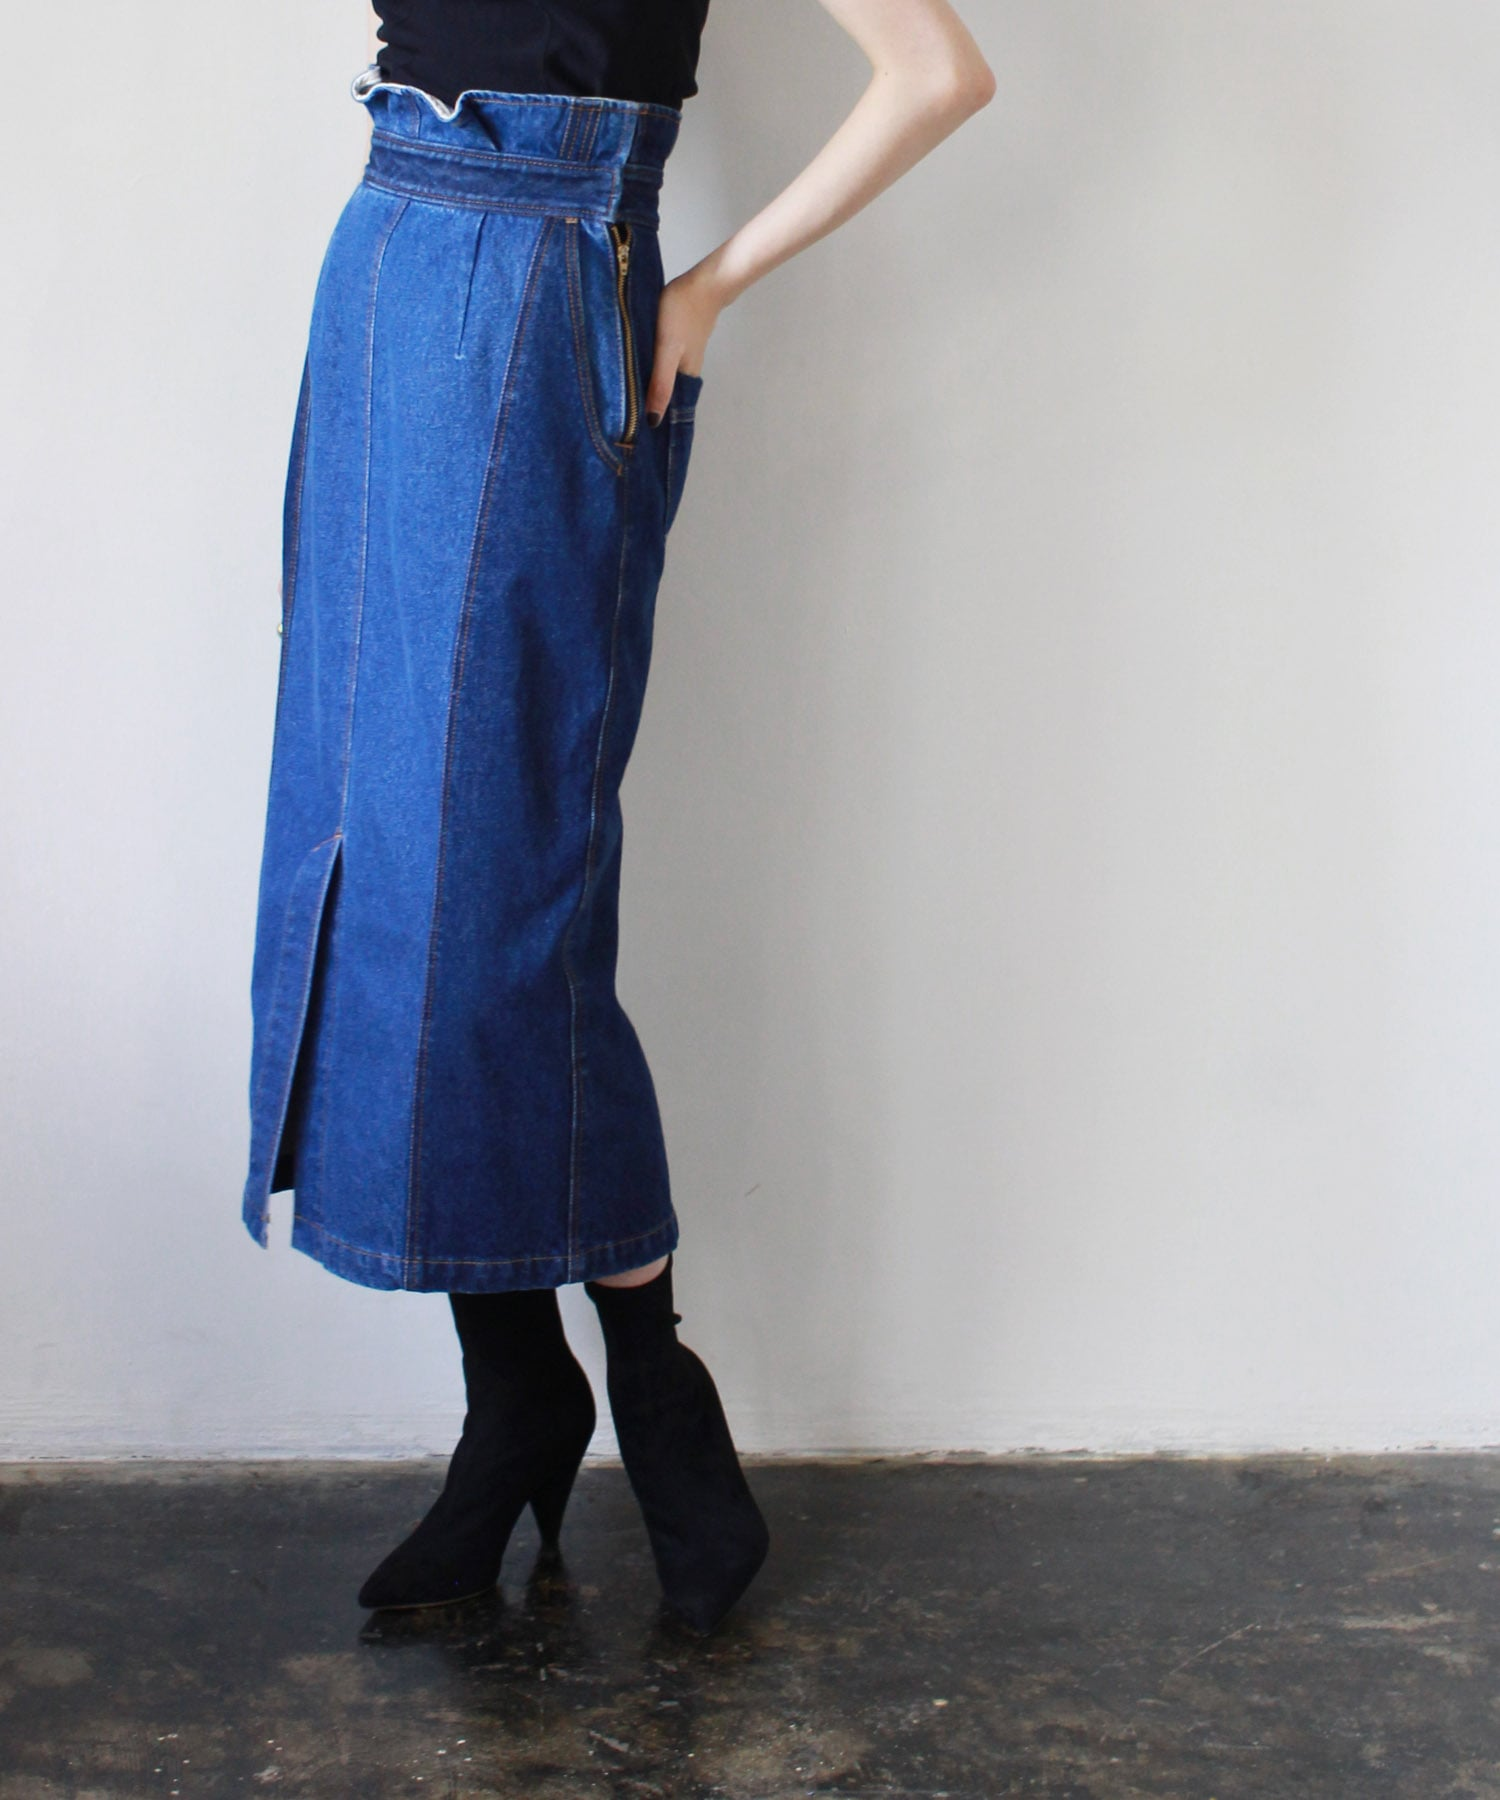 light&shade denim pencil skirt